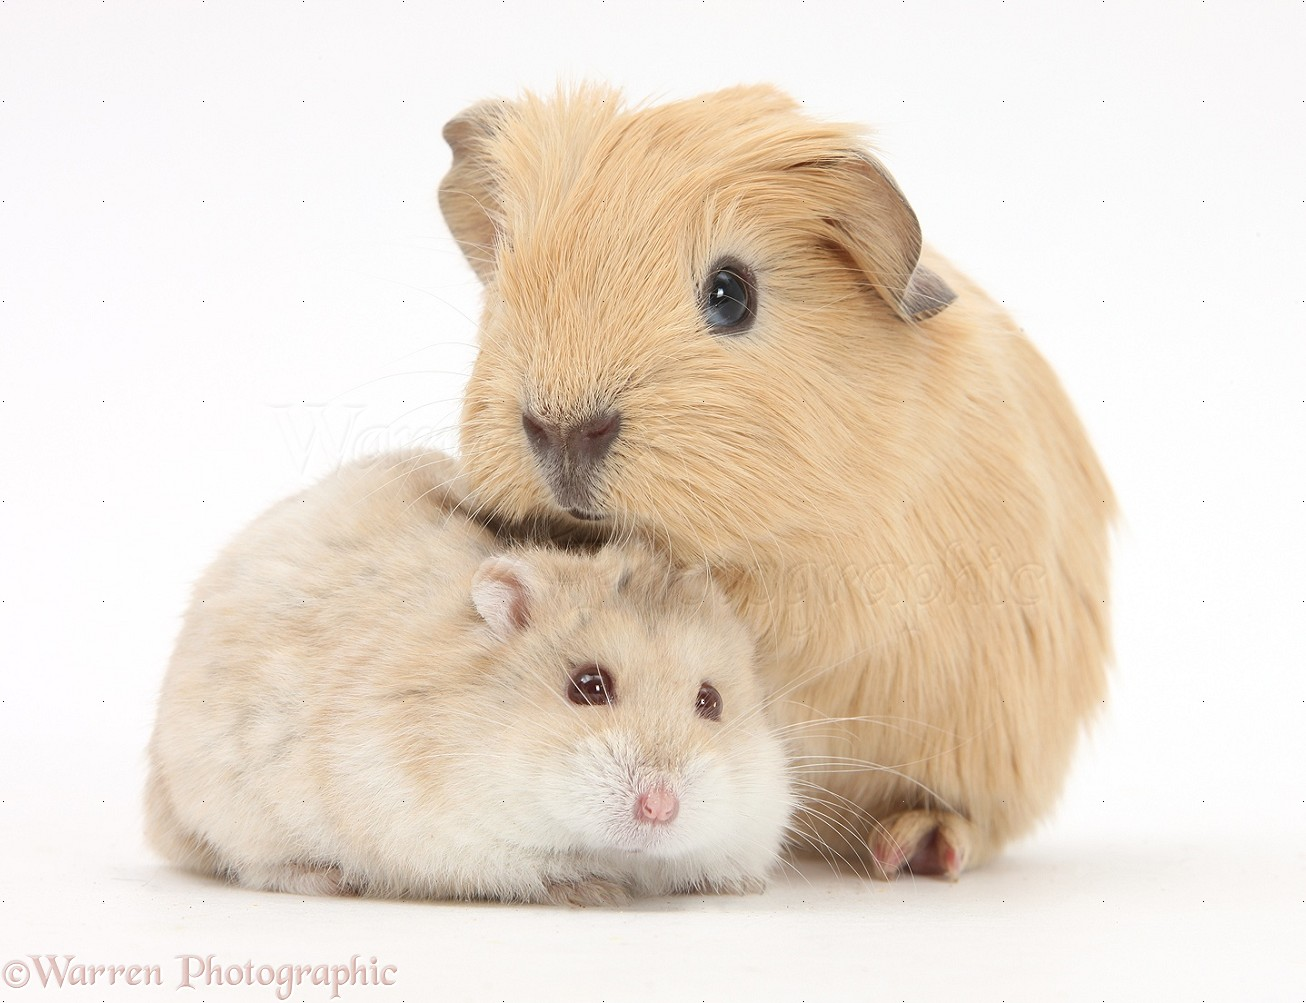 Uncategorized Hamster And Guinea Pig baby guinea pig and russian hamster photo wp25390 puppy red pig